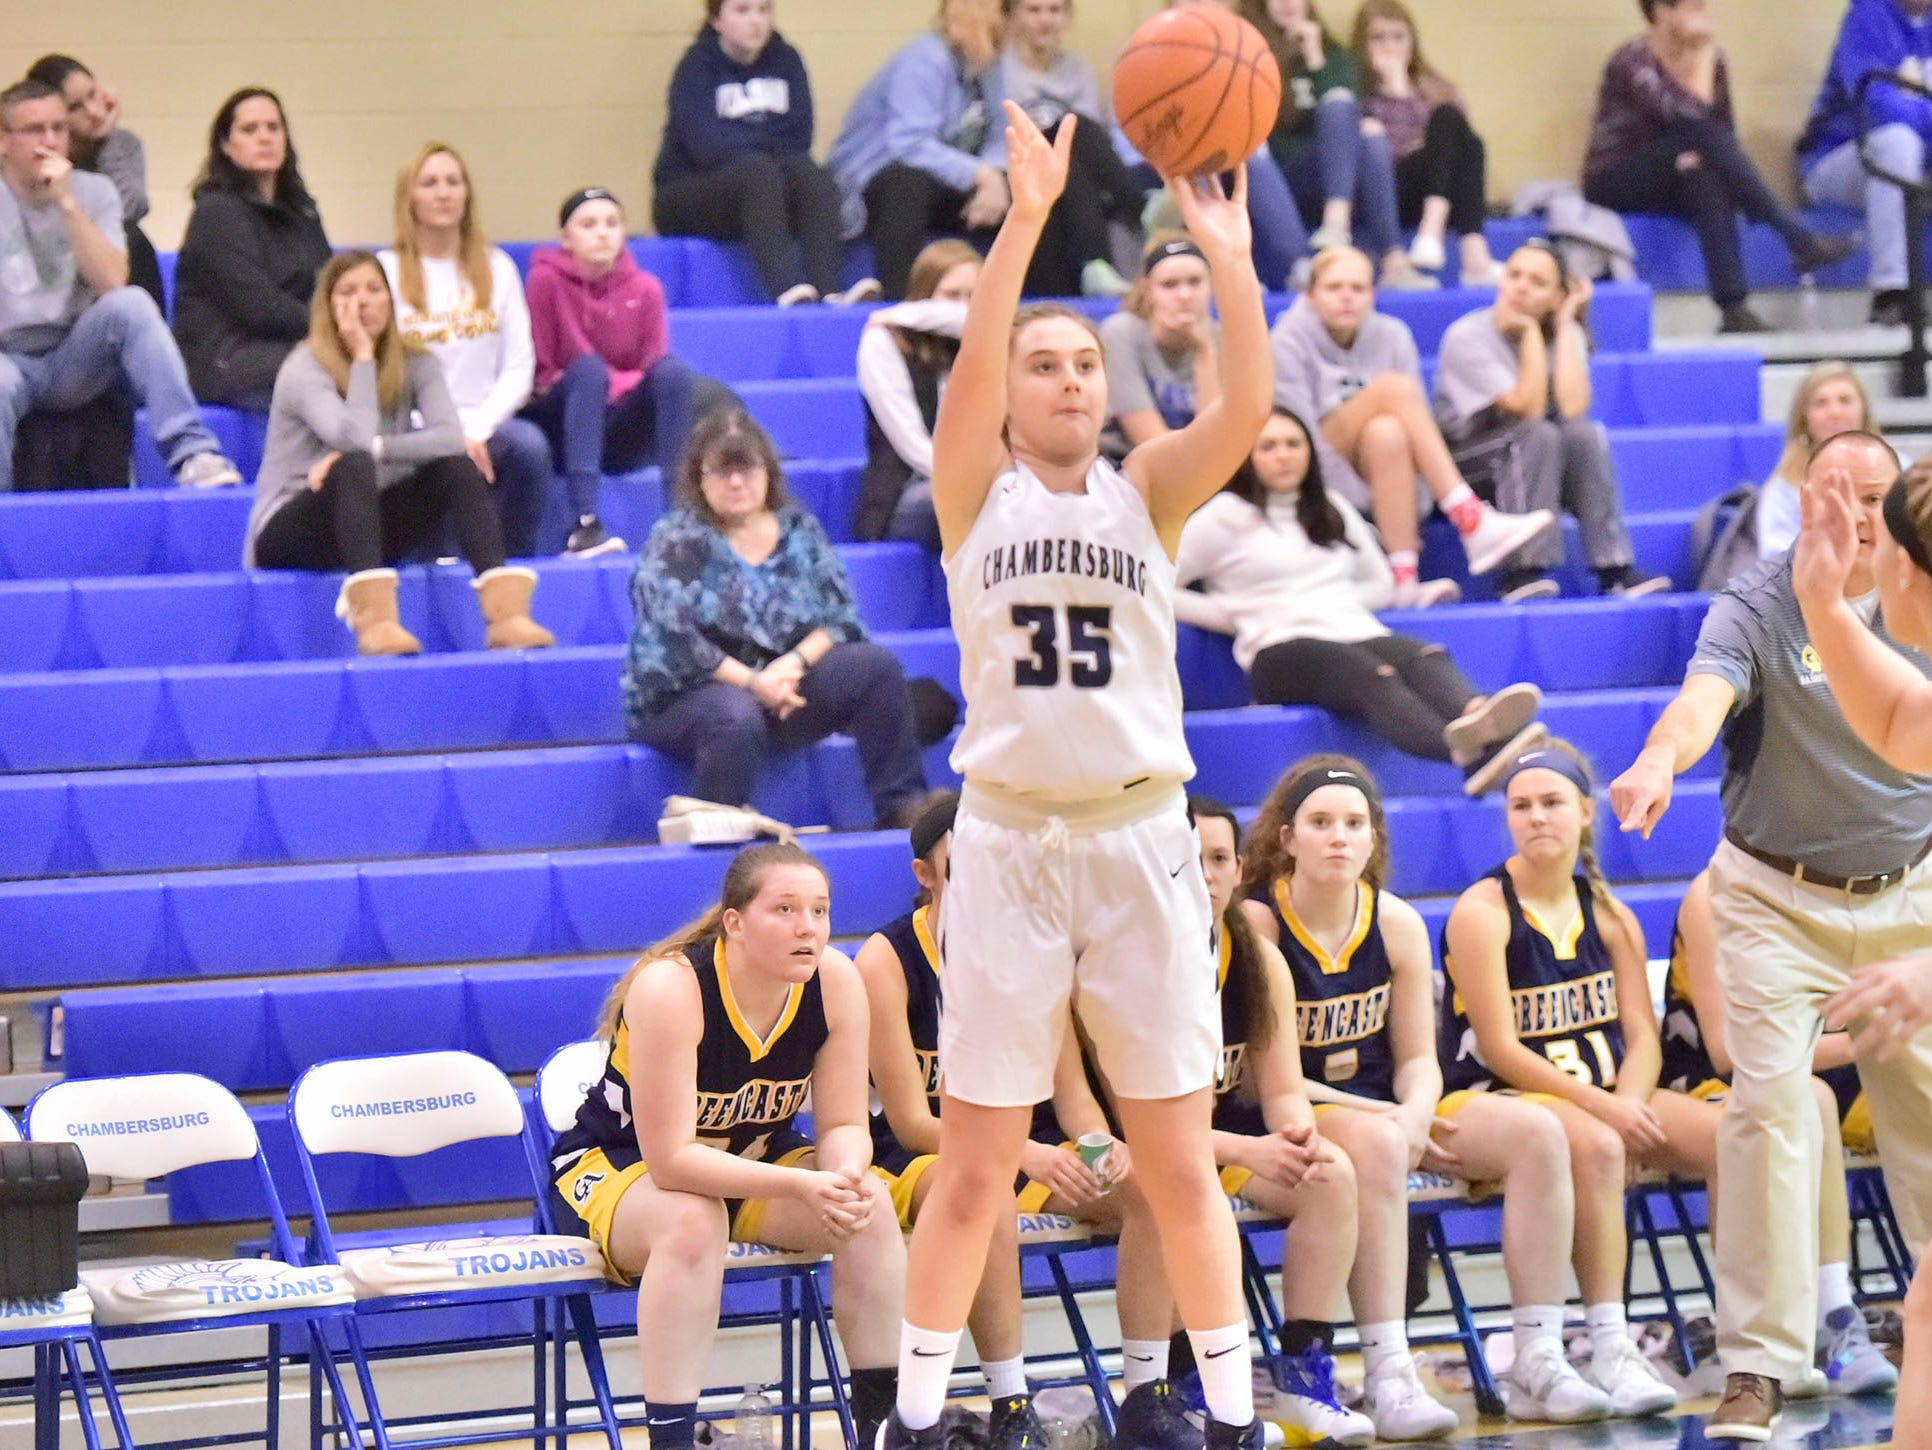 Sydney Schmus of Chambersburg fires up a shot. Chambersburg played Greencastle during the finals at Franklin County Tip-Off Tournament, Saturday, Dec. 8, 2018.